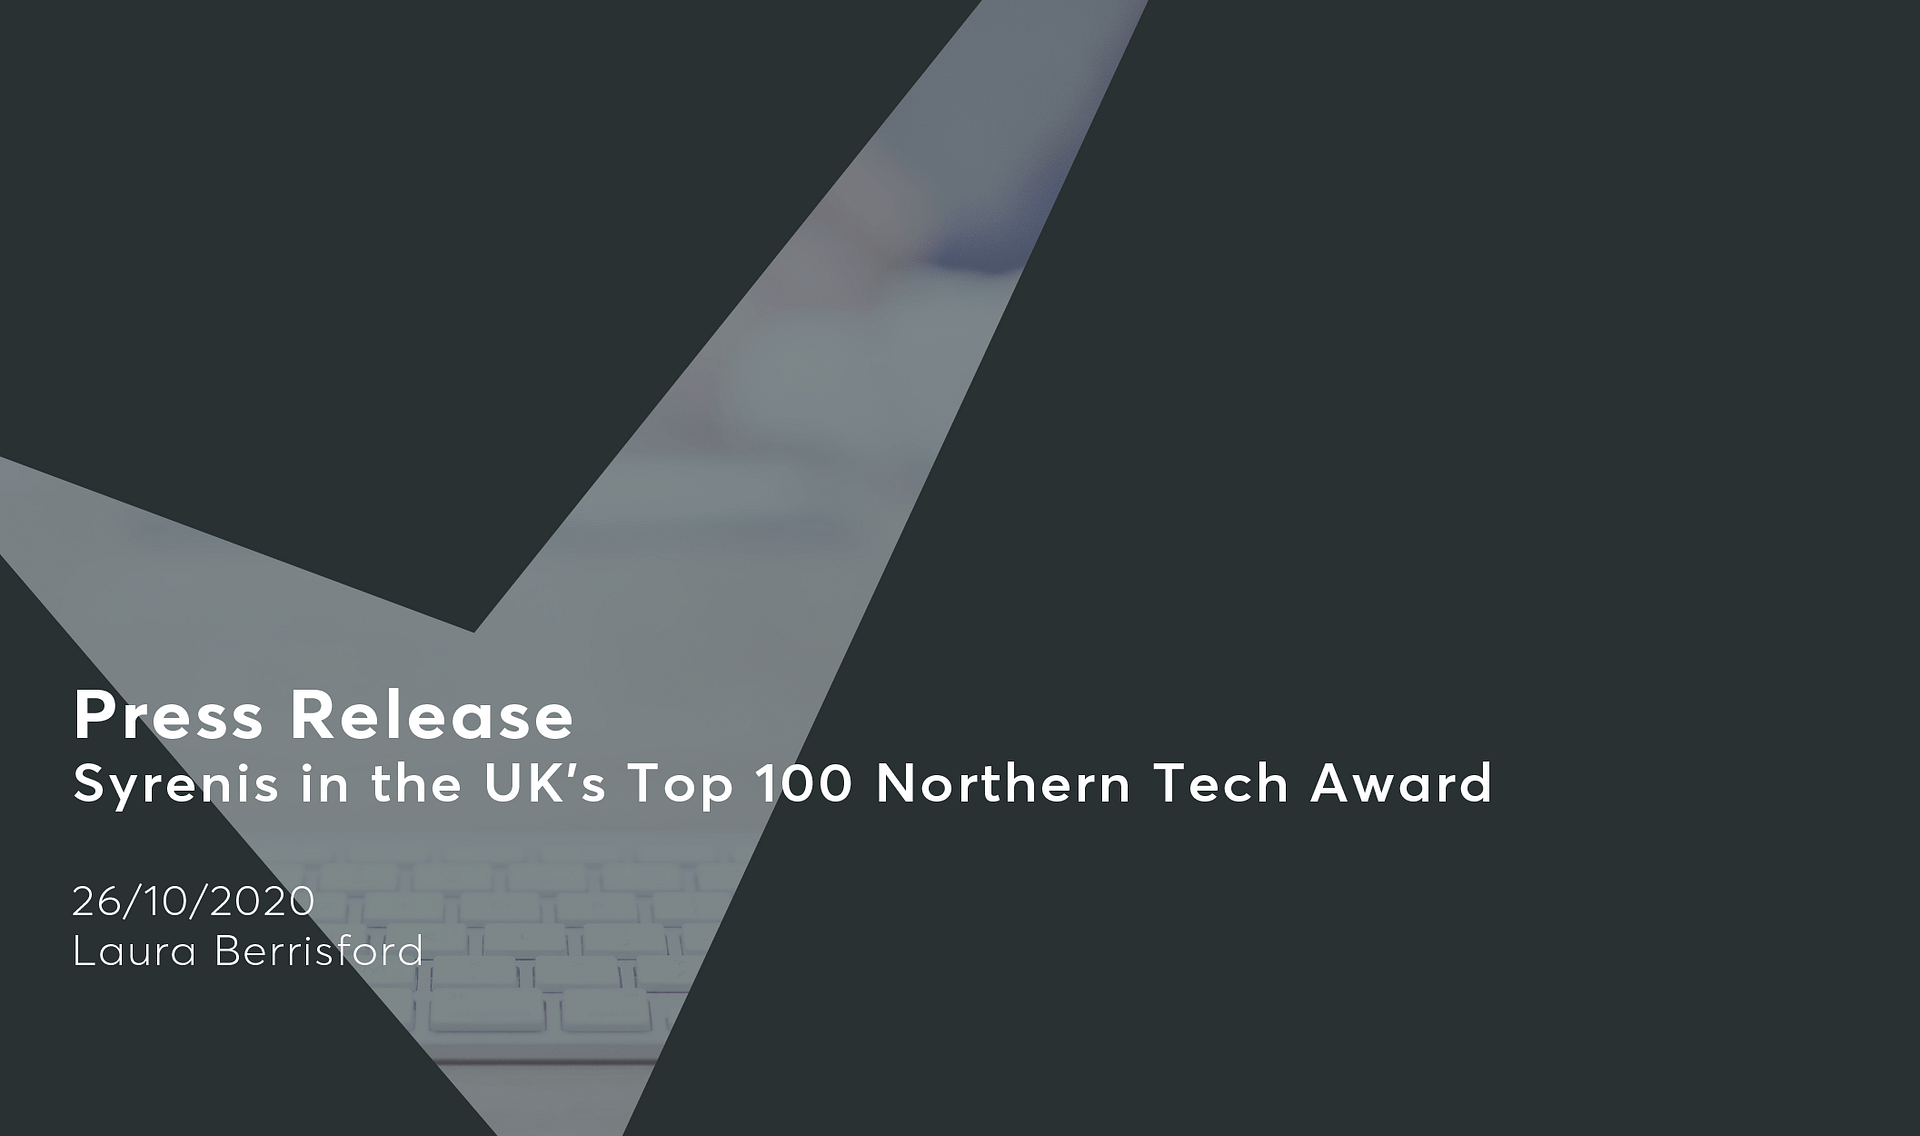 Syrenis-in-the-UKs-Top-100-Northern-Tech-Award